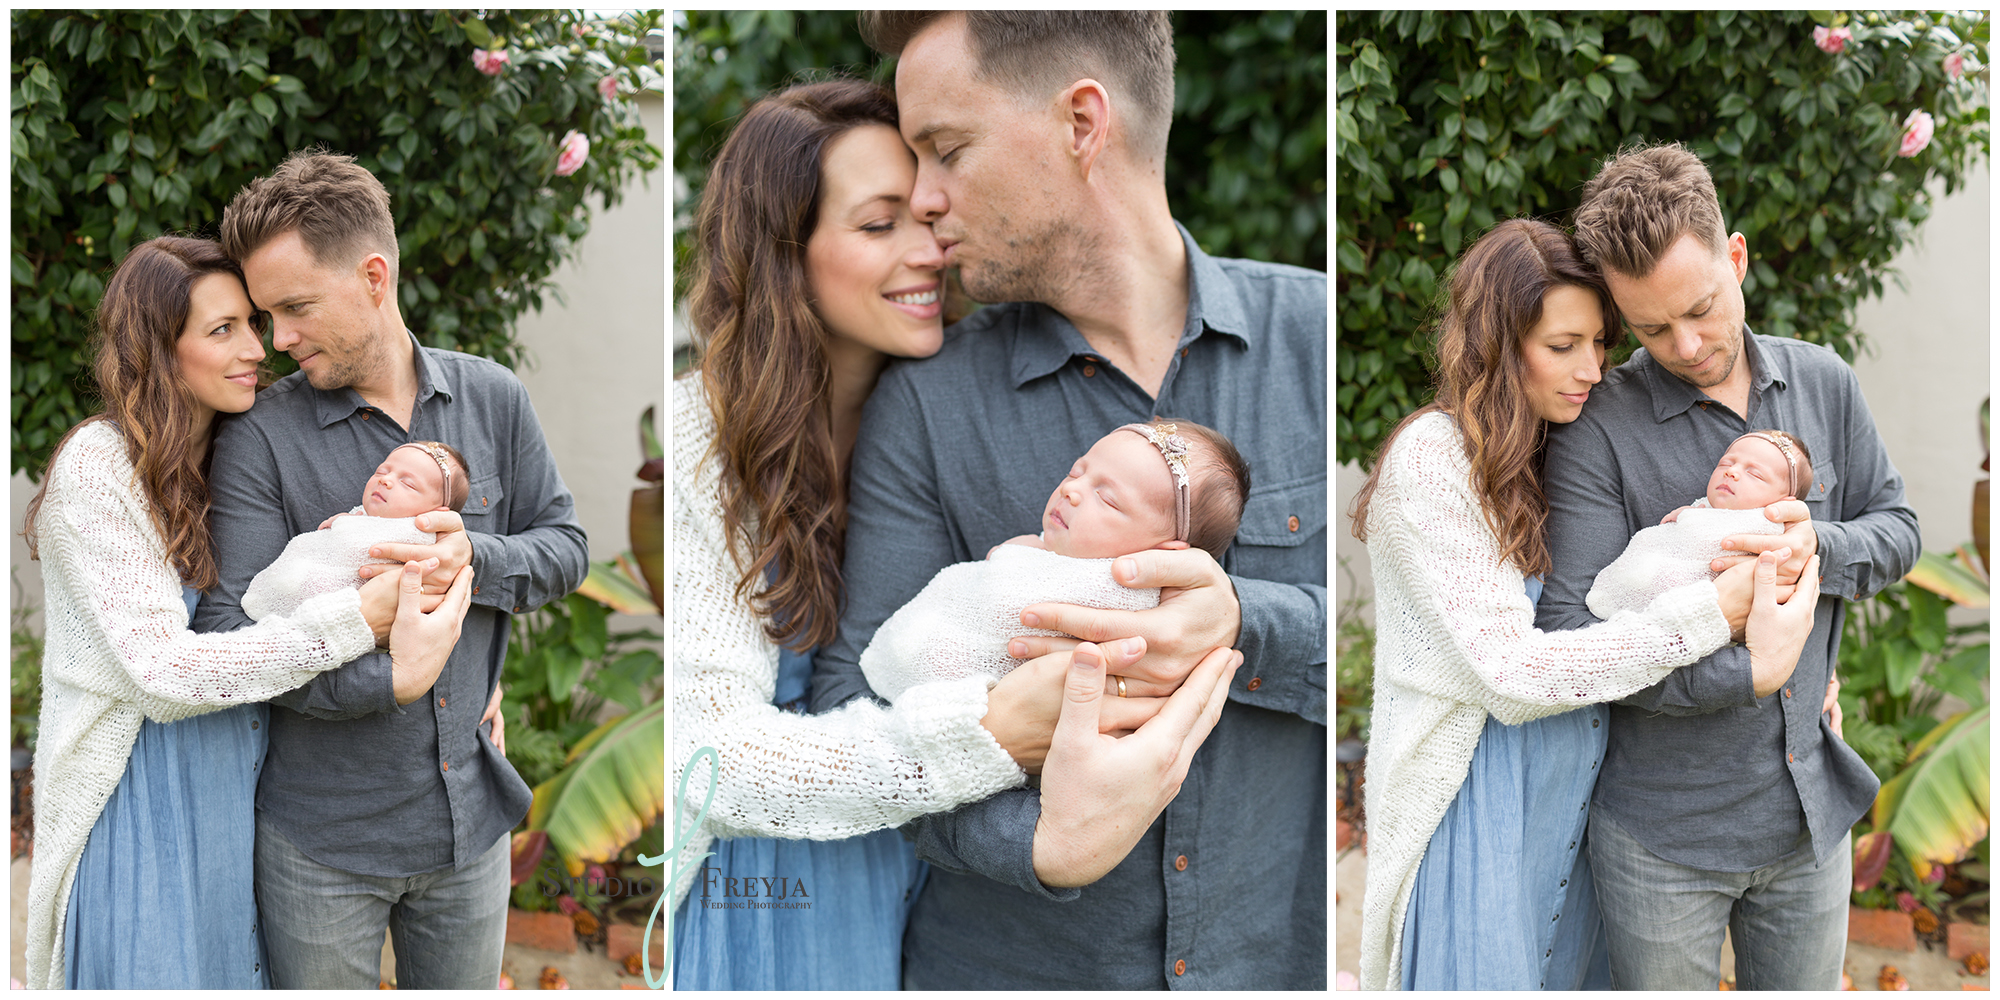 Outdoor Parent pictures during newborn session in San Diego CA